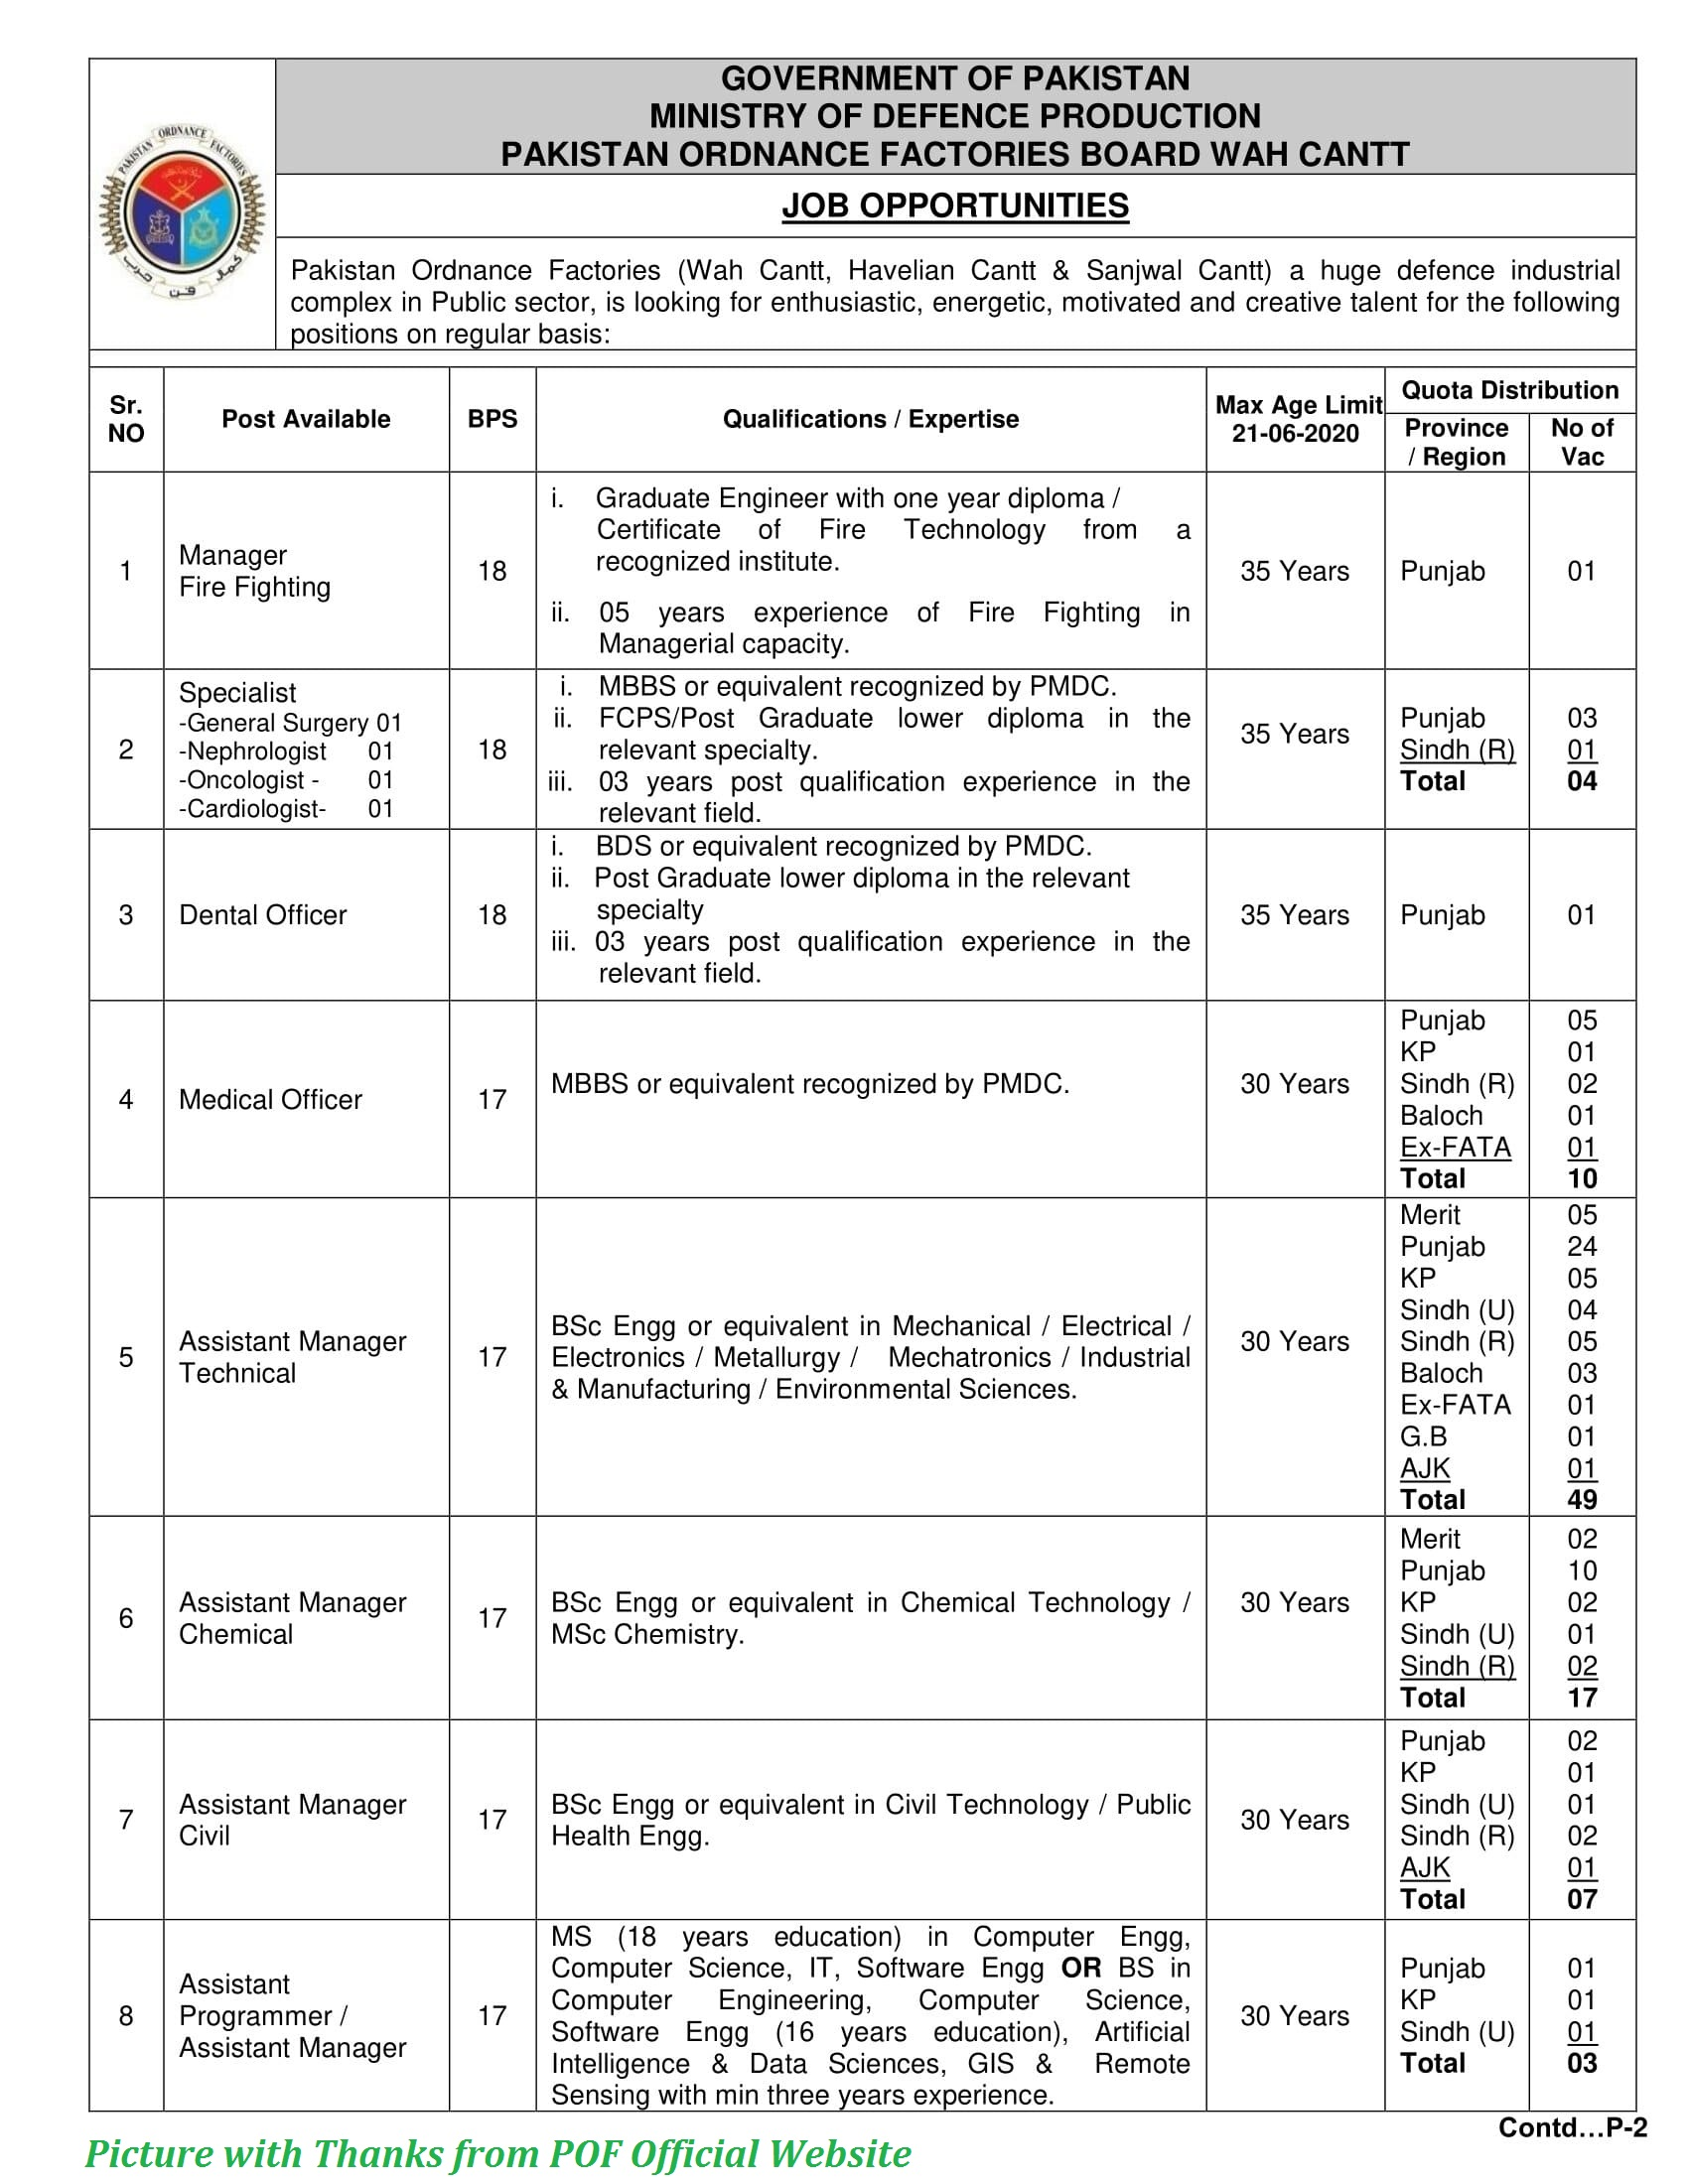 POF Jobs 2020 - Latest Jobs in Pakistan Ordinance Factories Wah Cantt 1500+ Posts Announced